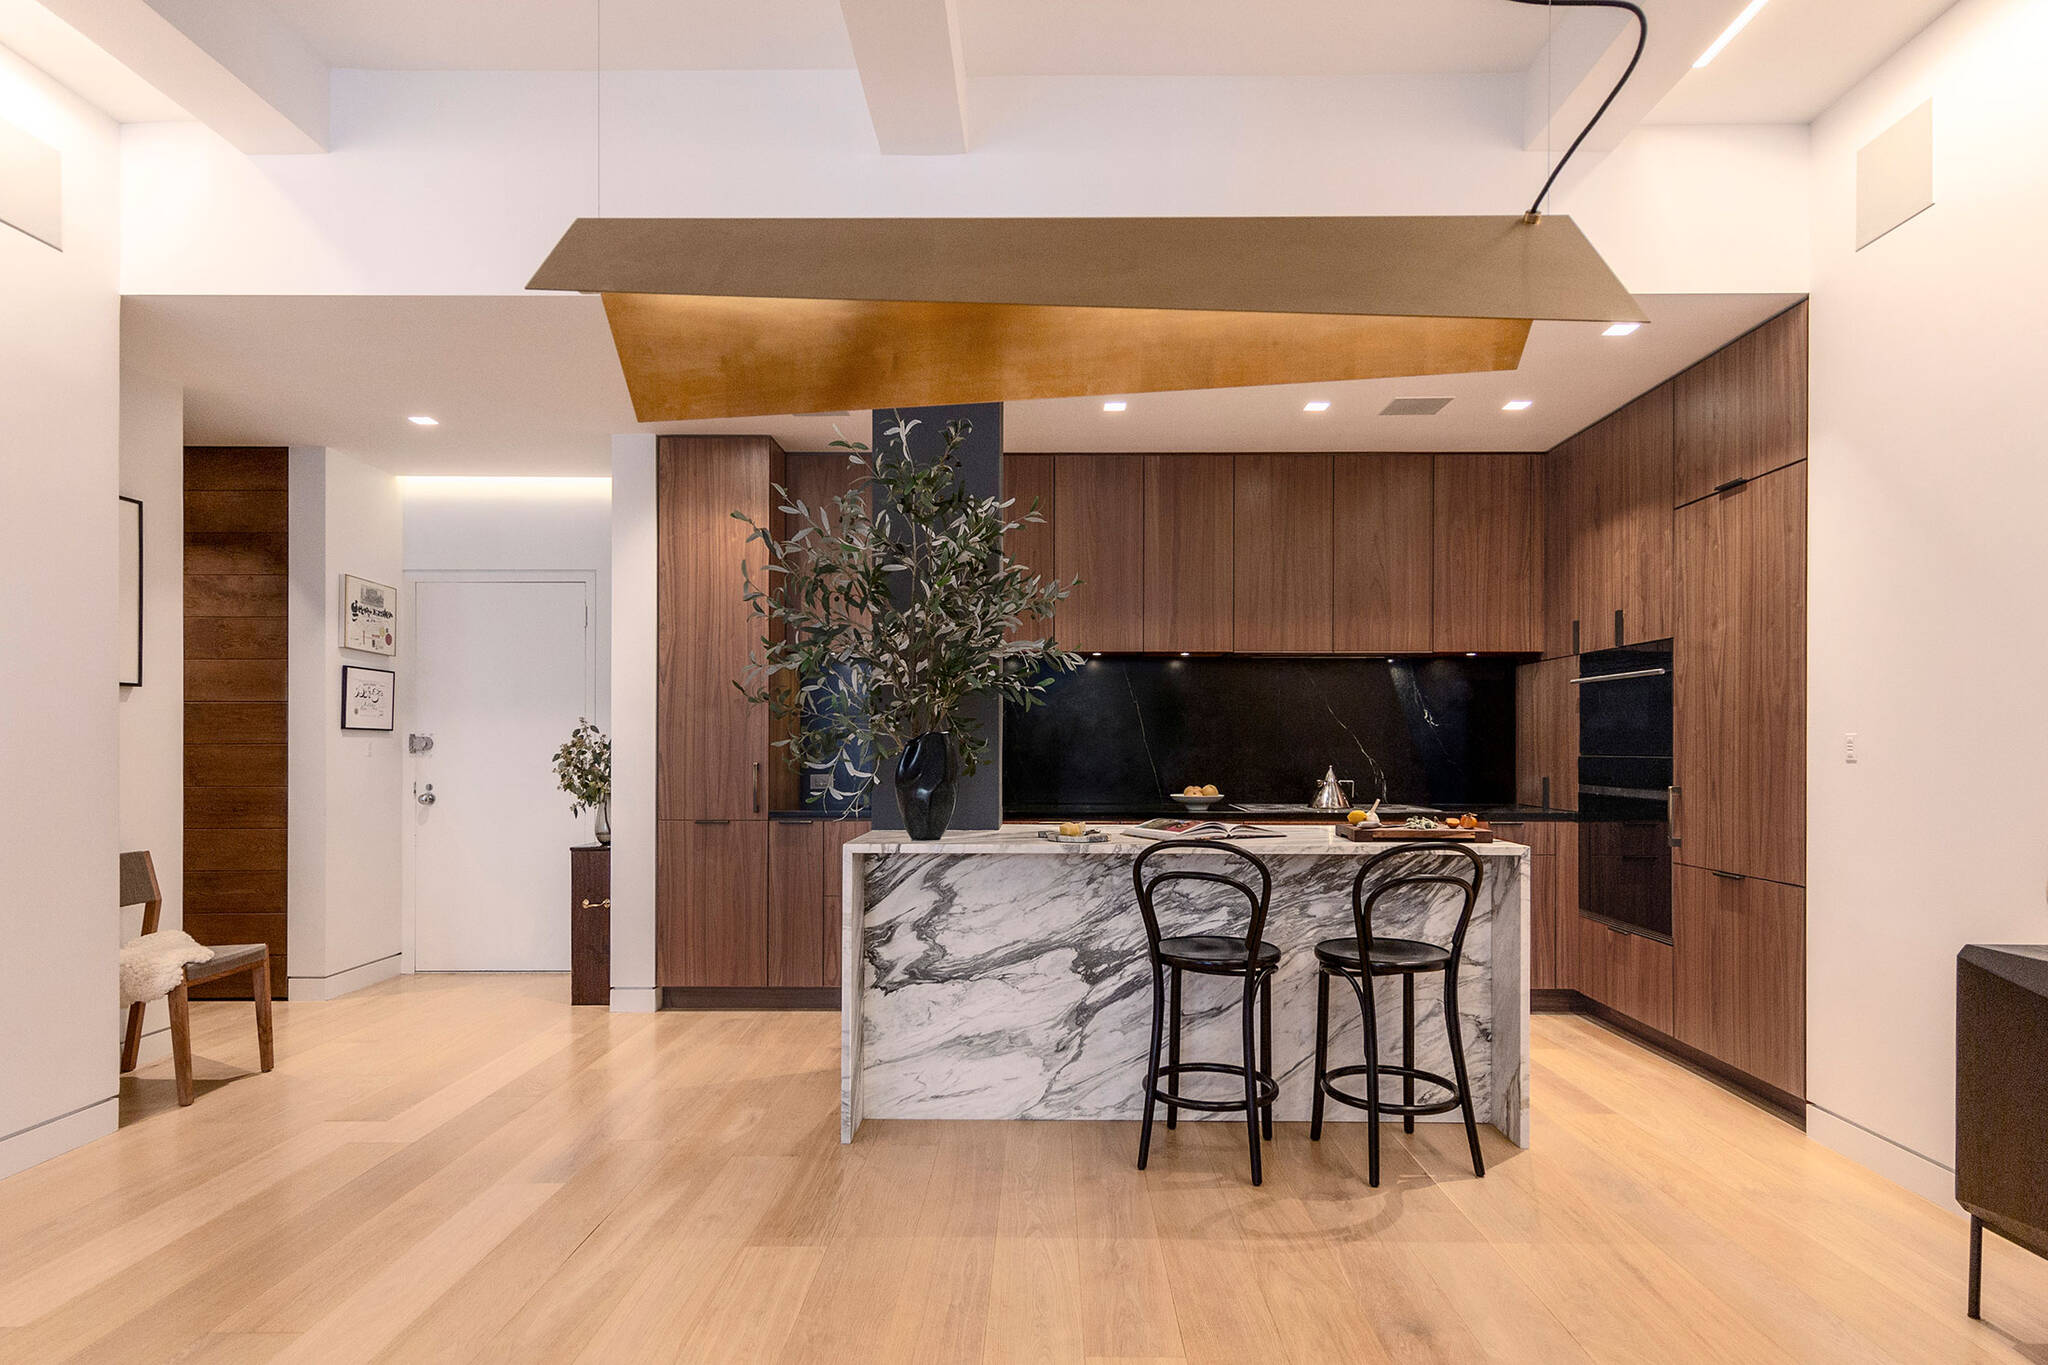 Loft renovation project in Chelsea, New York City designed by the architecture studio Danny Forster & Architecture